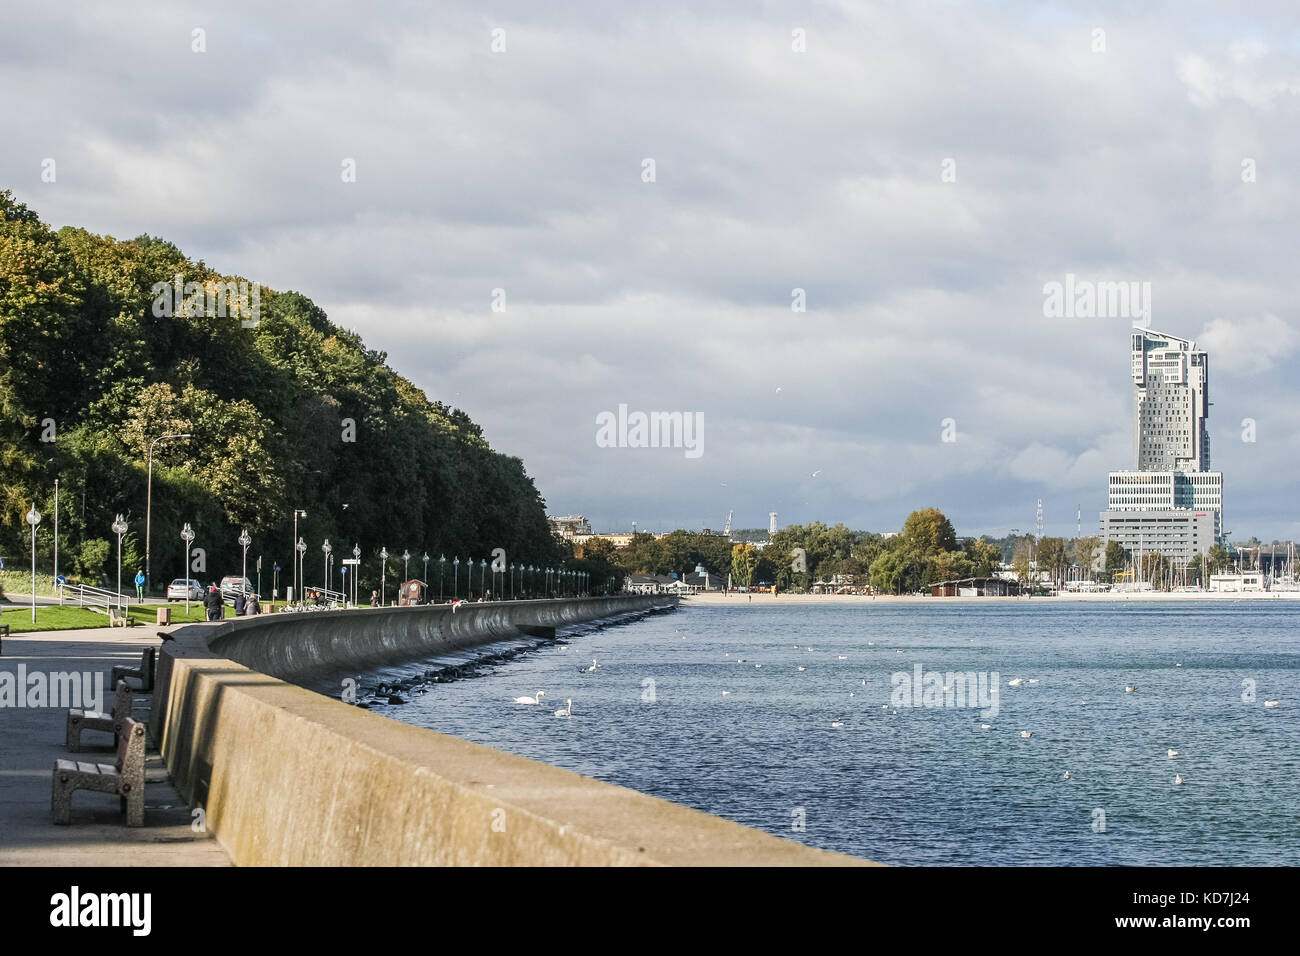 Gdynia, Poland. 10th Oct, 2017. CCTV camera on the Seafront Boulevard (Bulwar Nadmorski) is seen in Gdynia, Poland, Stock Photo